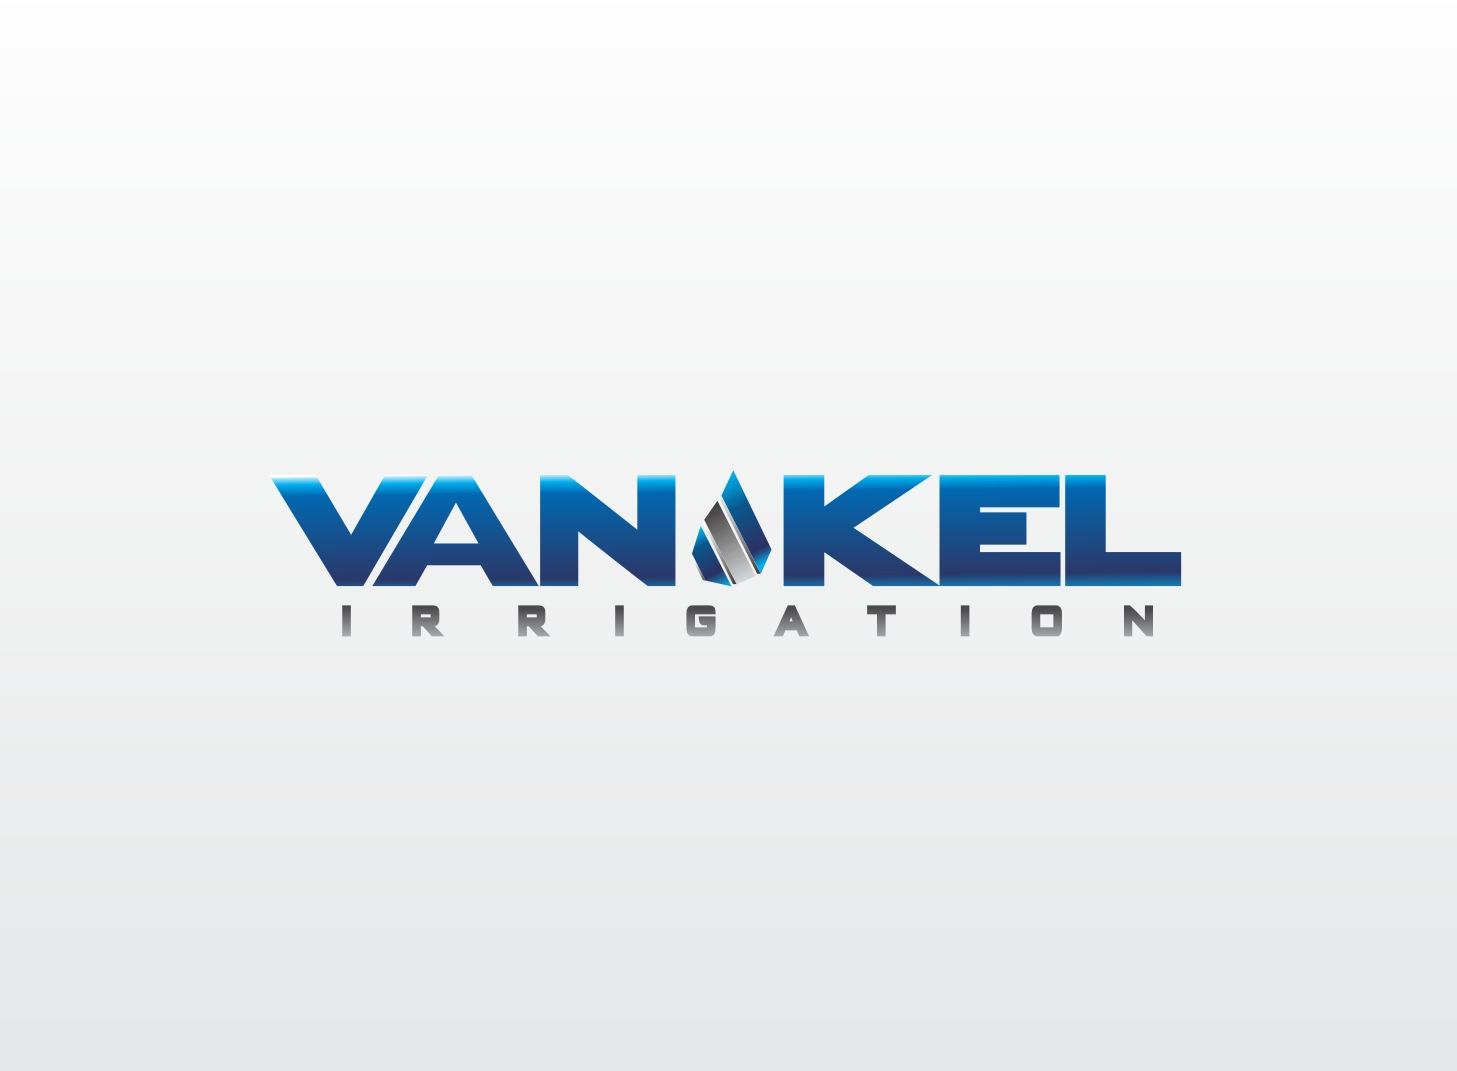 Logo Design by Zdravko Krulj - Entry No. 127 in the Logo Design Contest Van-Kel Irrigation Logo Design.